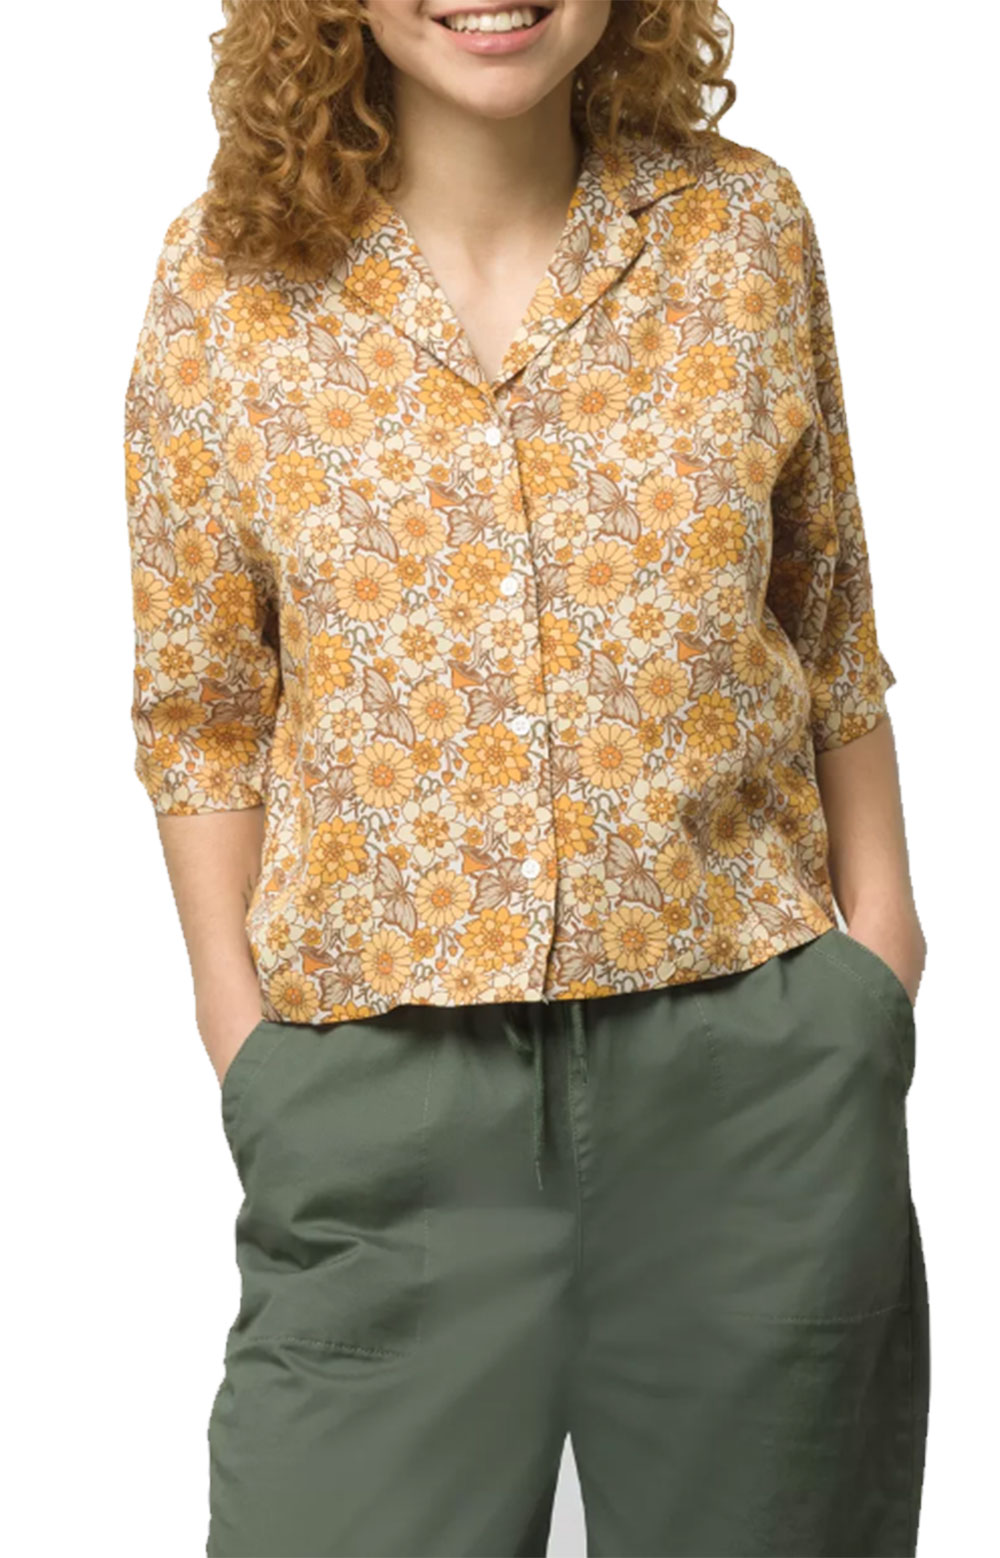 Trippy Floral Woven Shirt - Trippy Floral